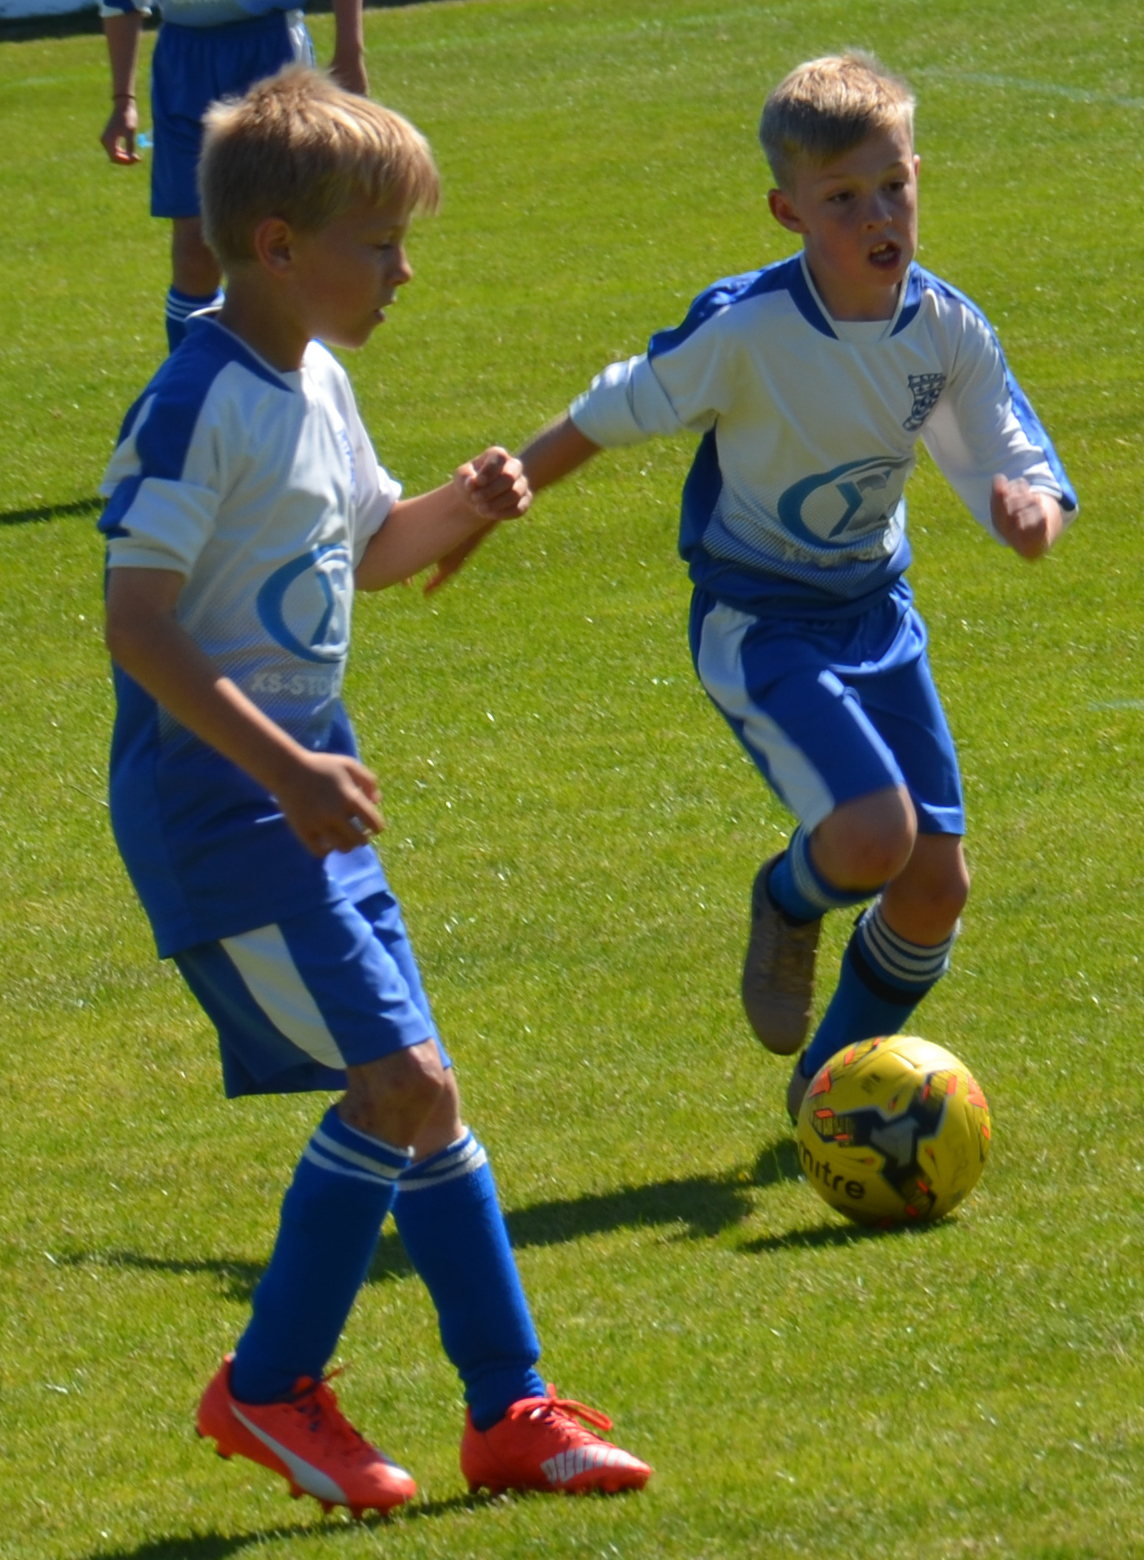 Largs Colts in action in tournament